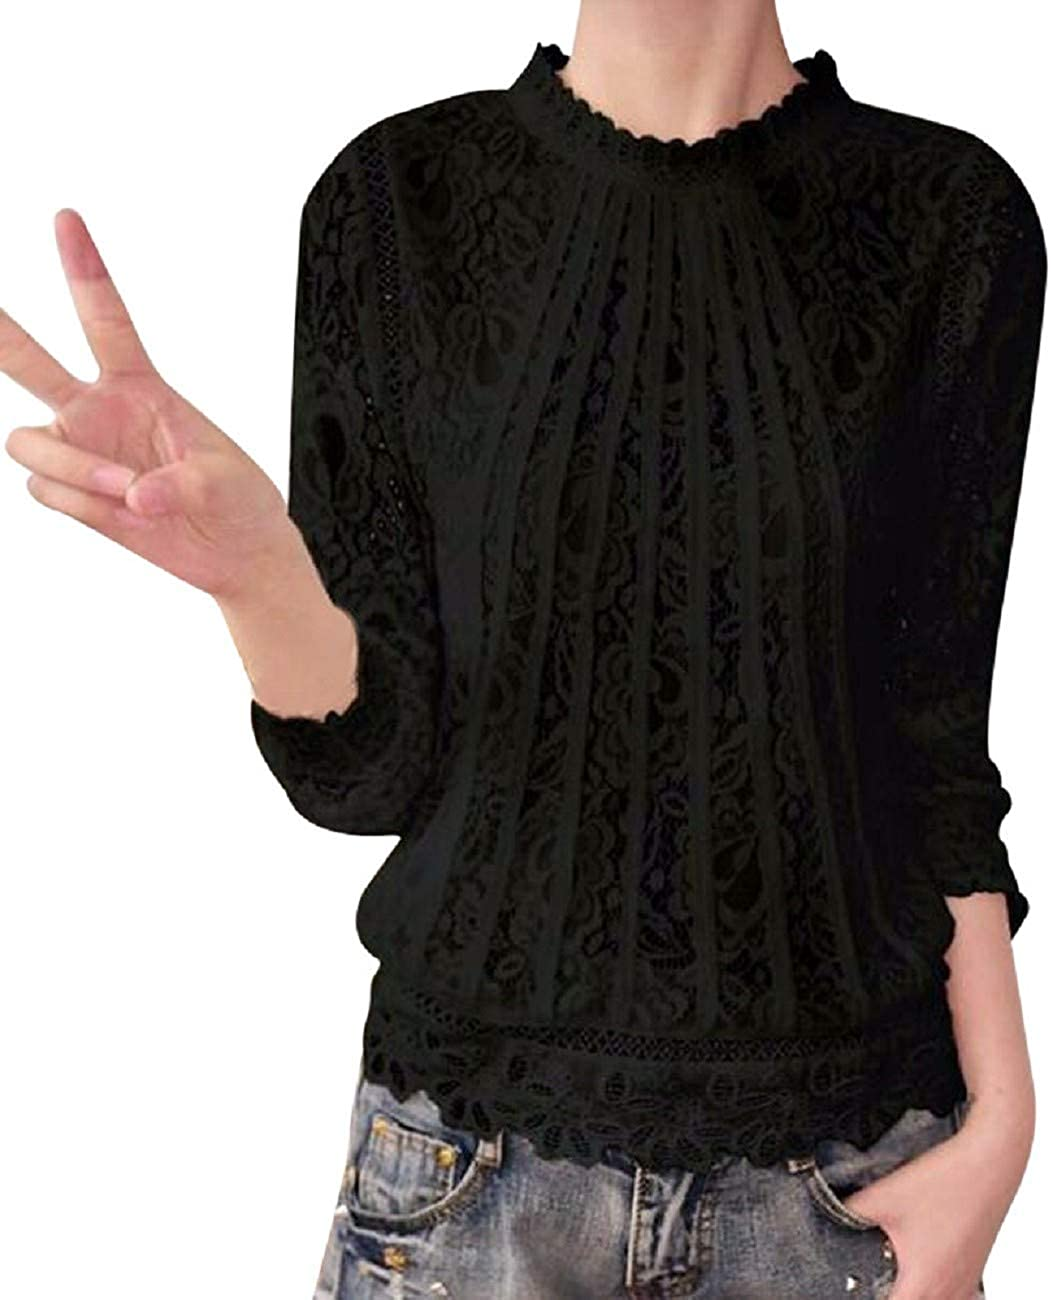 Tsmile Women Lace Splicing Long Sleeve Shirts Round Neck Solid Casual Slim Fit Pullover Tops Blouse T-Shirt